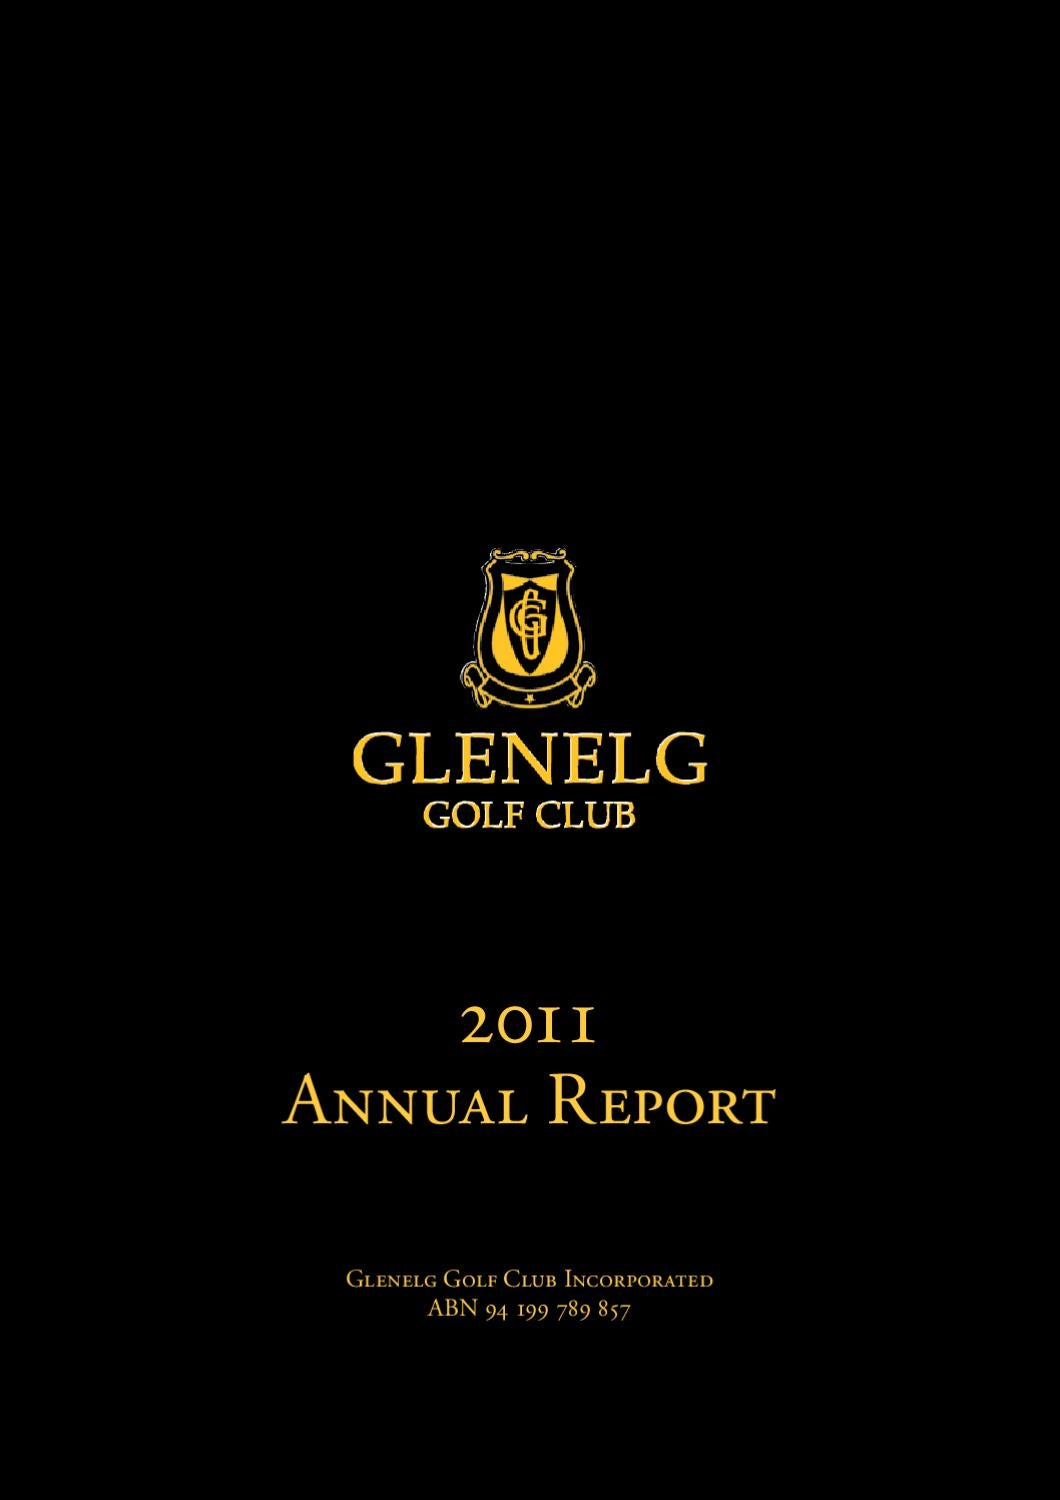 2011 annual report by glenelg golf club issuu. Black Bedroom Furniture Sets. Home Design Ideas